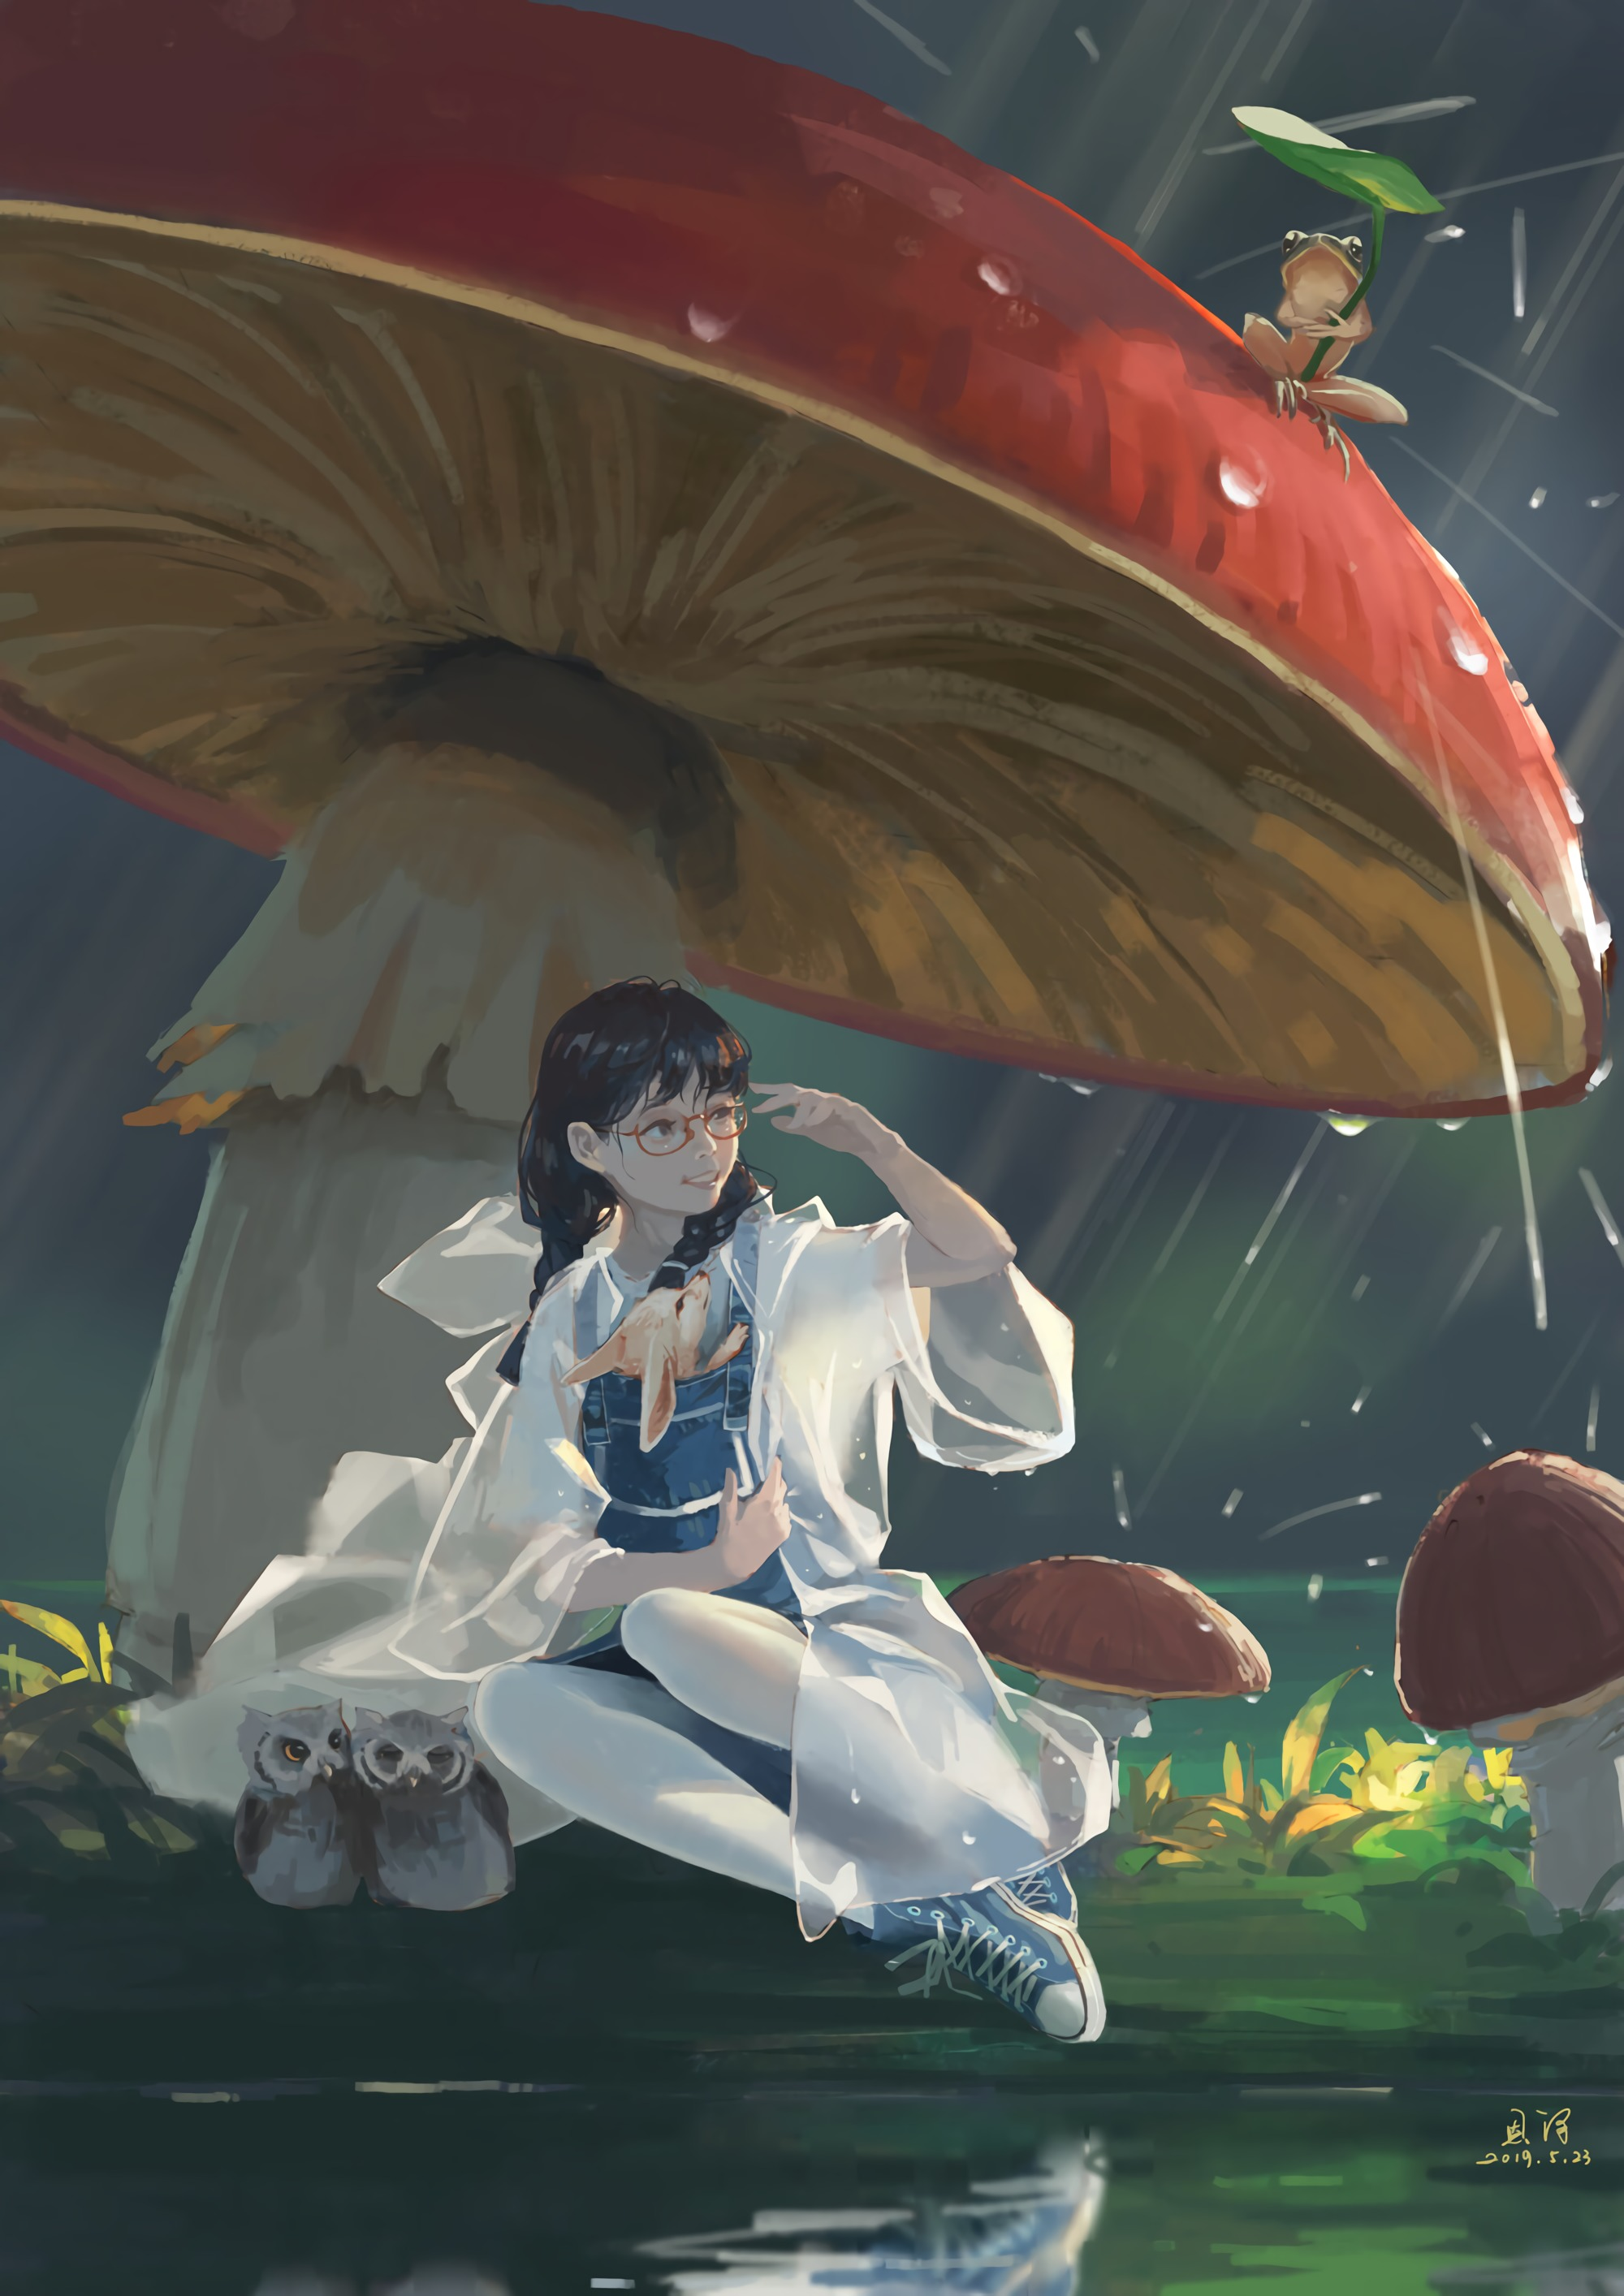 68106 download wallpaper Animals, Art, Rain, Mashrooms, Girl screensavers and pictures for free